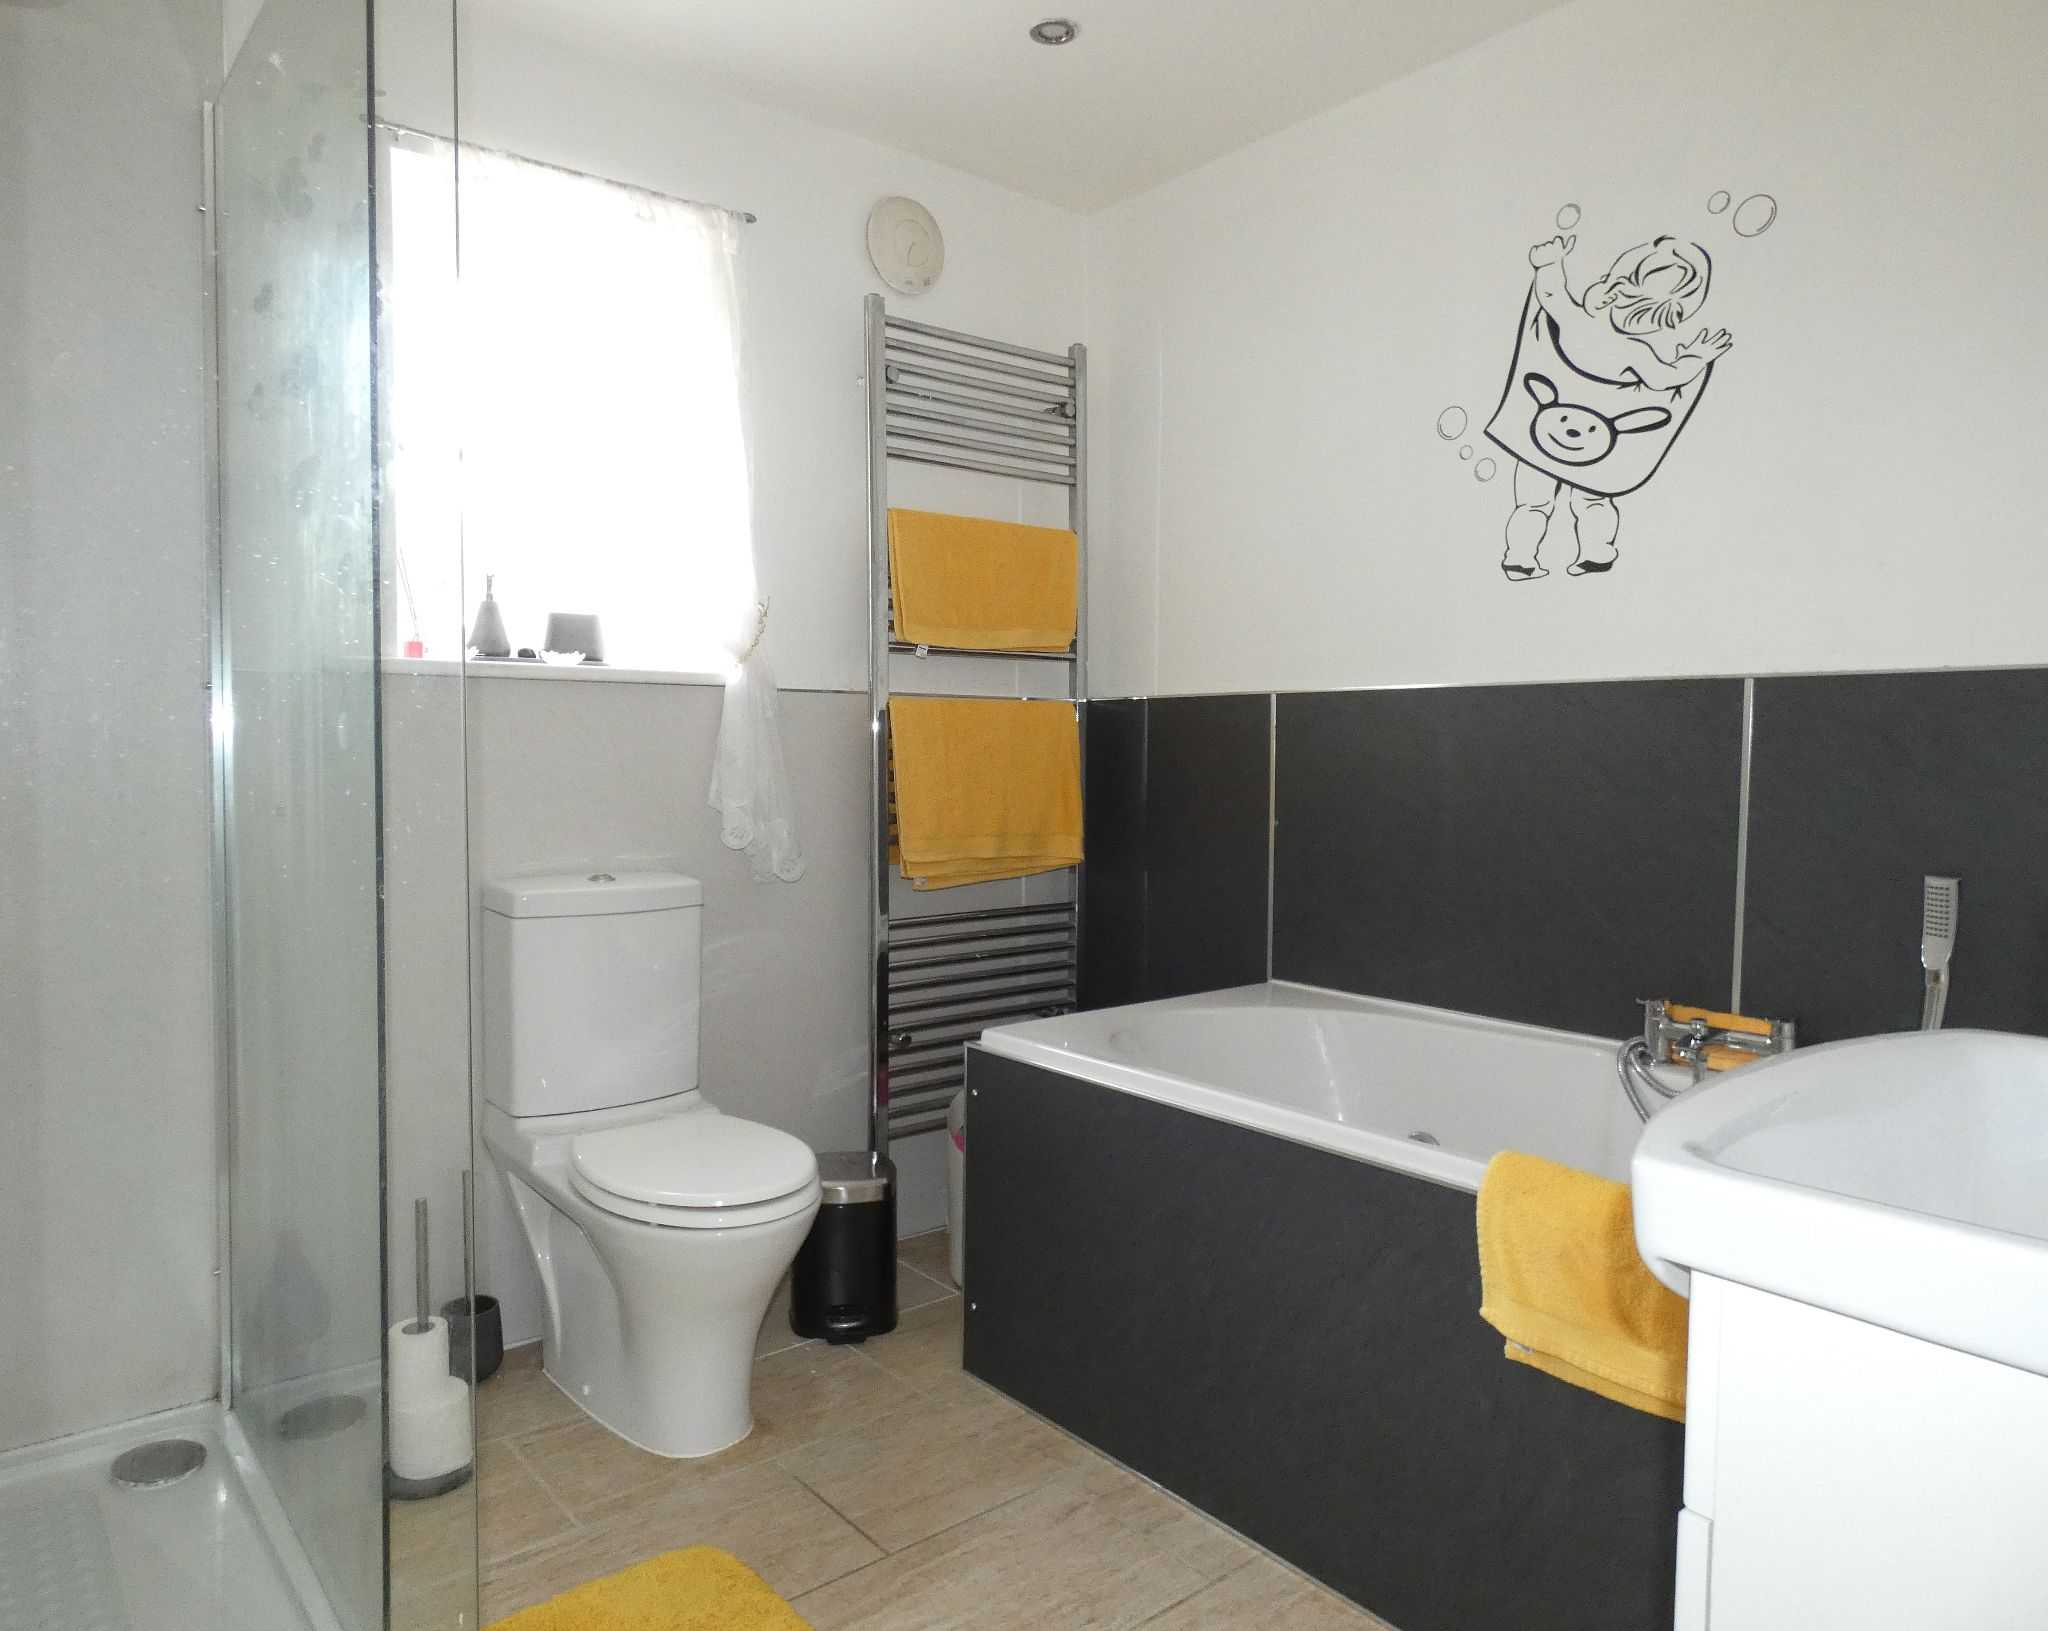 6 bedroom detached house For Sale in Bishop Auckland - Family Bathroom.